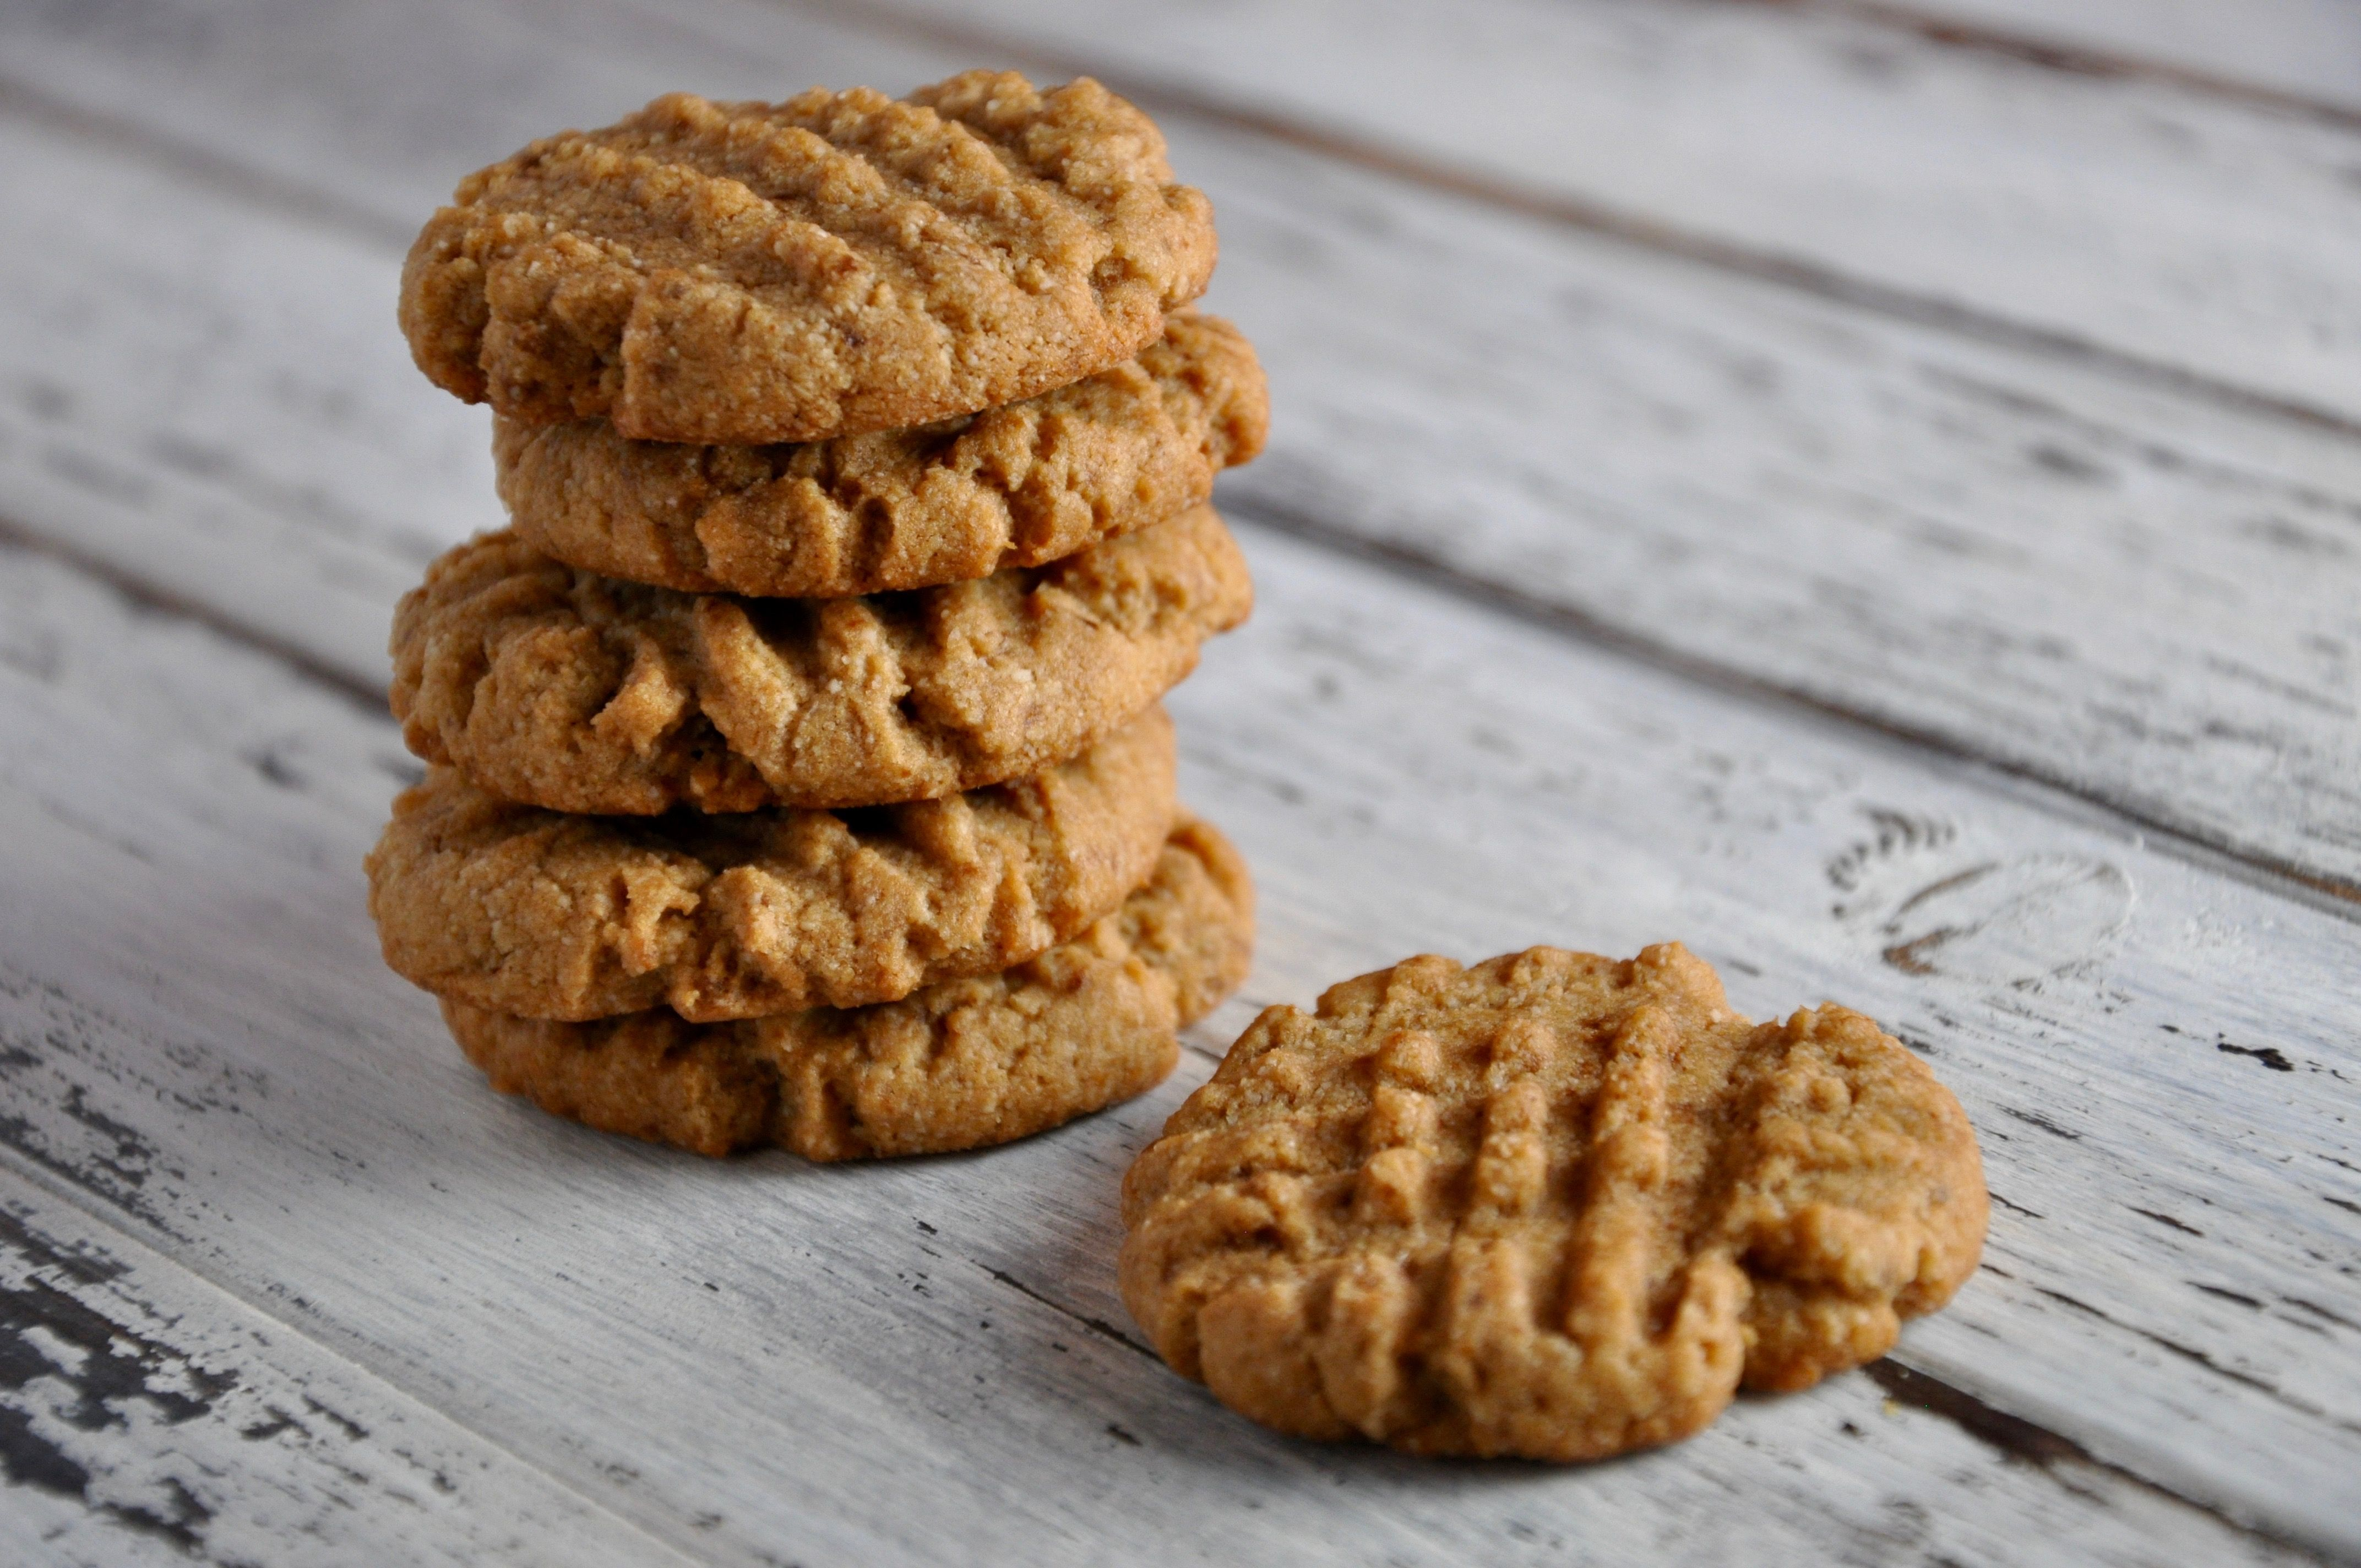 With a family as peanut butter obsessed as mine, it's important to have a really solid recipe for peanut butter cookies! This is by far the best grain-free version of peanut butter cookies that I've ever come up with. Which is why you'll never see me make a single batch…double batch or nothing! Peanut butter...